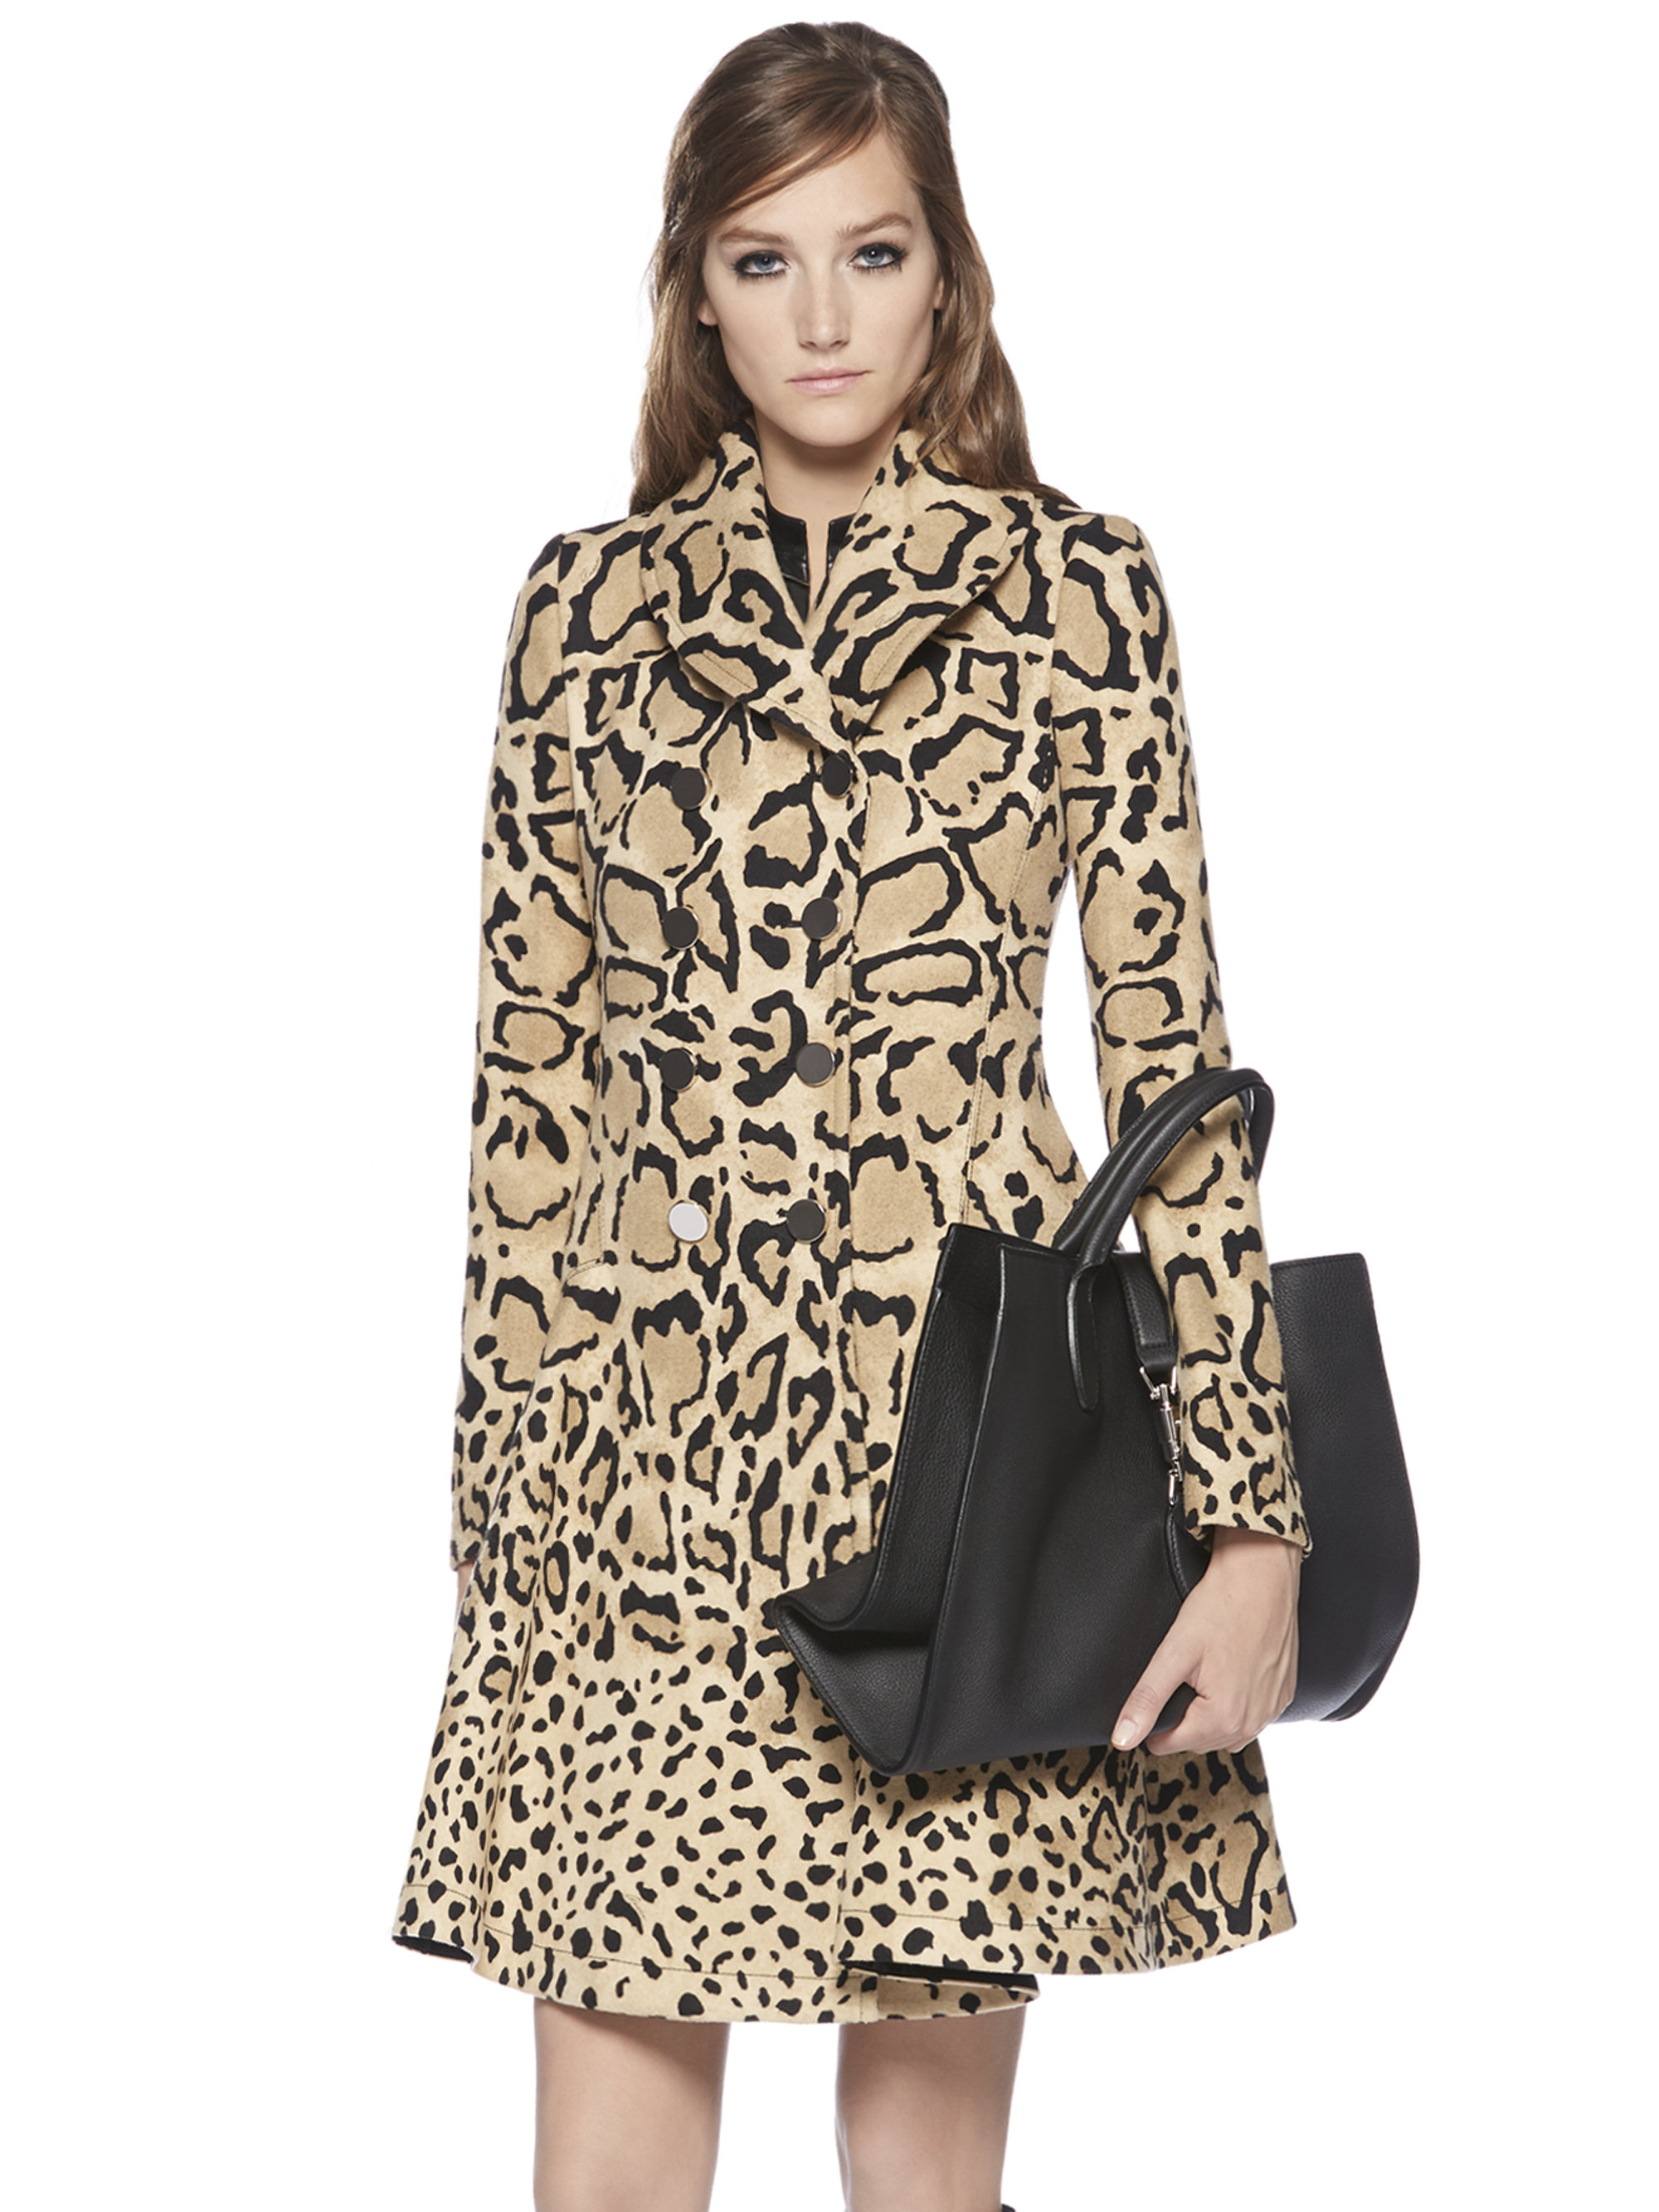 Gucci Leopard Print Double-breasted Wool Coat | Lyst